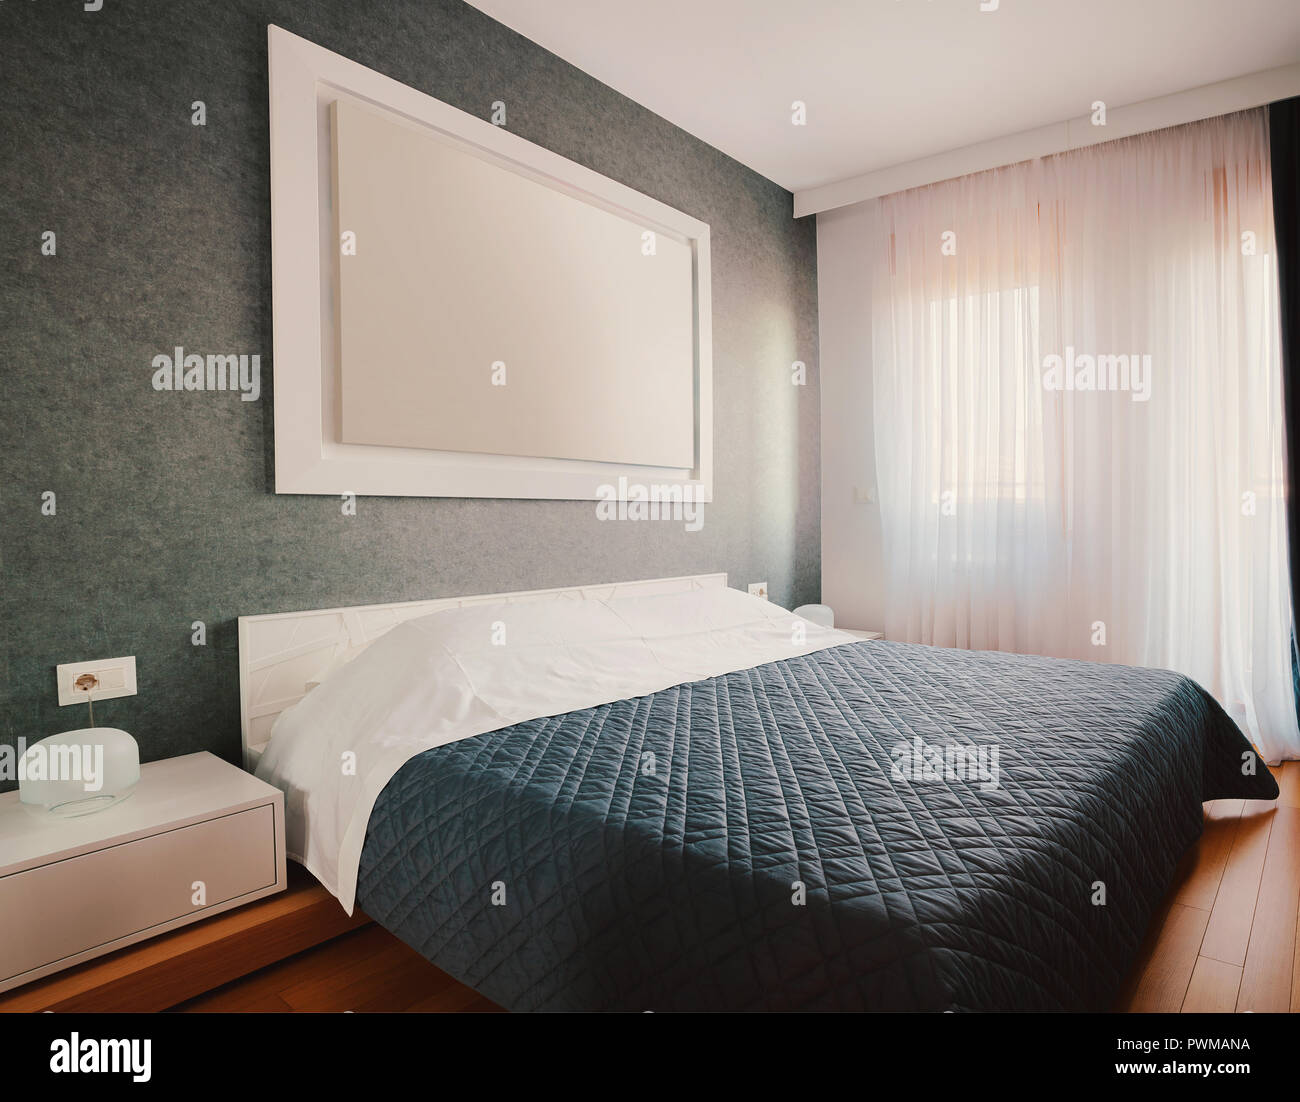 . Interior of small hotel or home bedroom  modern furniture and room